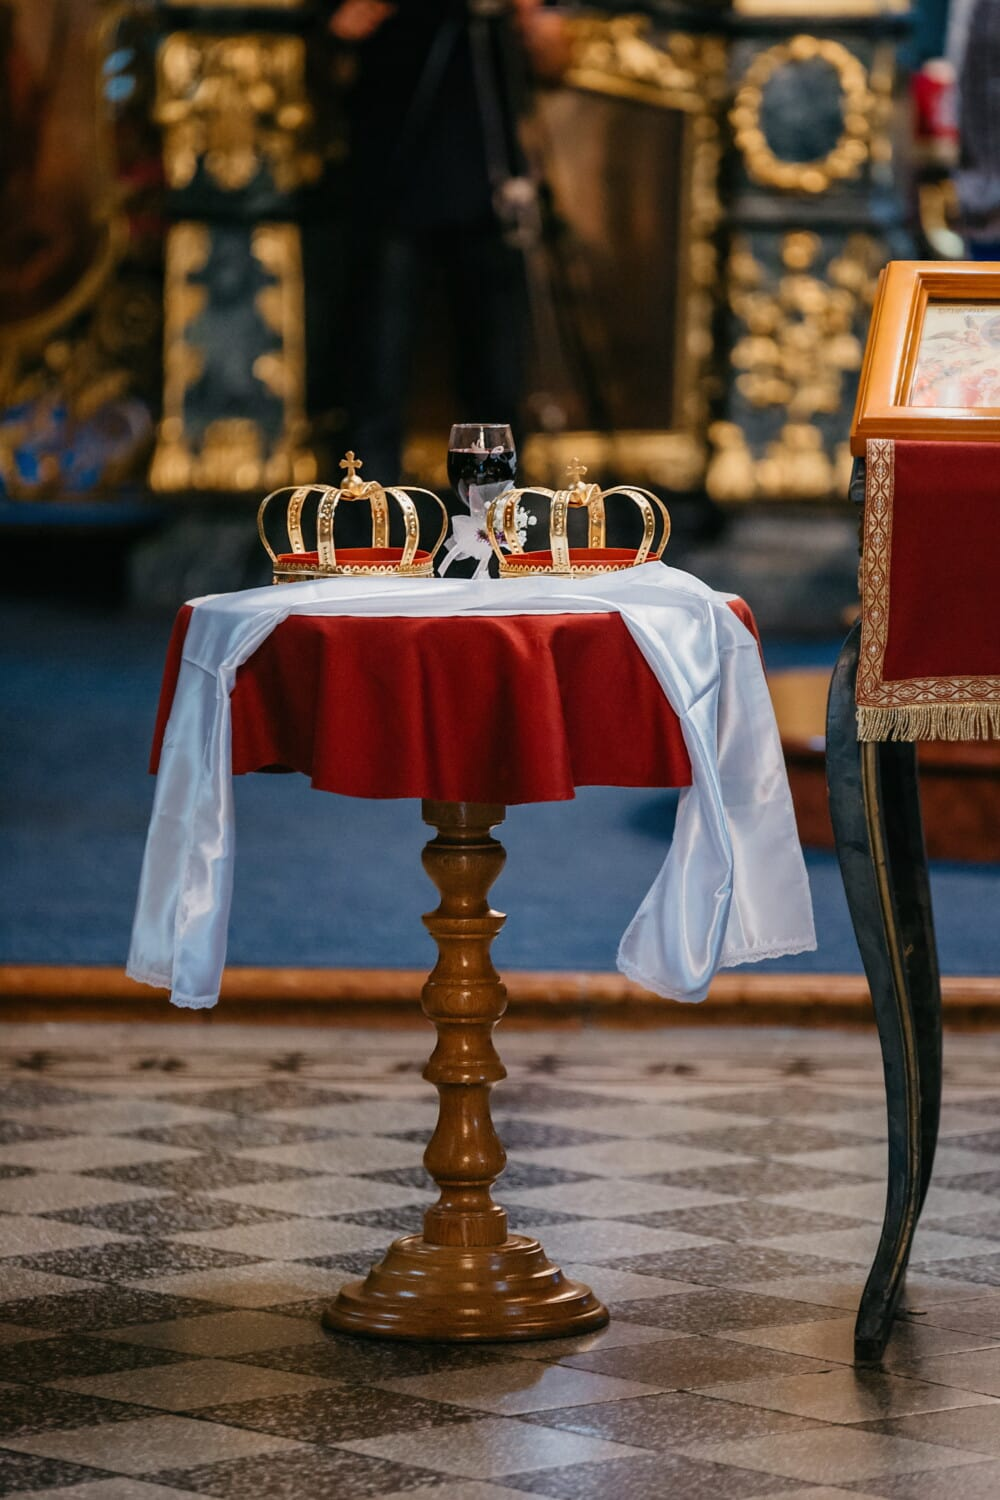 church, coronation, red wine, crown, orthodox, russian, table, indoors, interior design, luxury